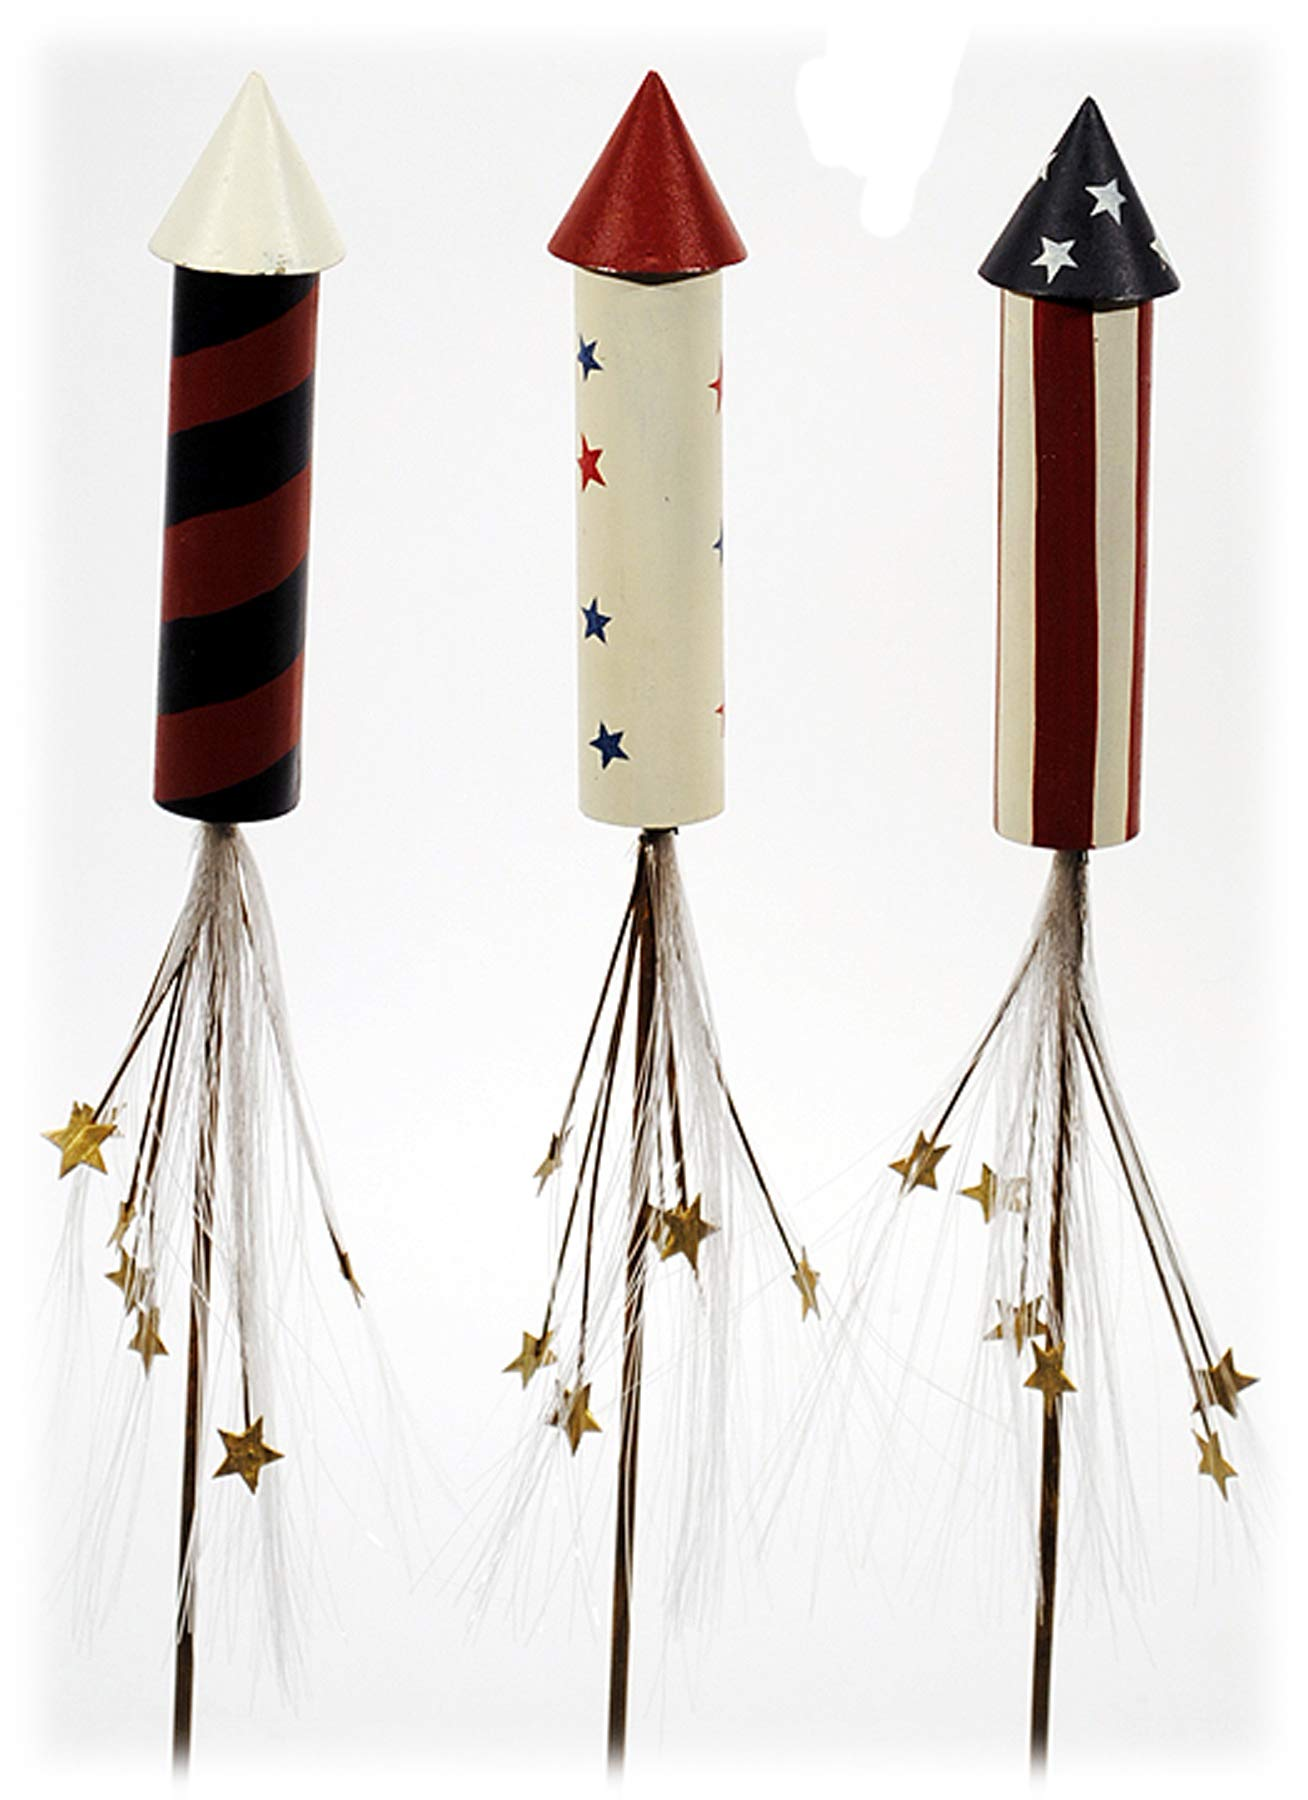 Metal Rocket Plant Stake - Set of 3 - USA Patriotic July 4th Home Floral Decor